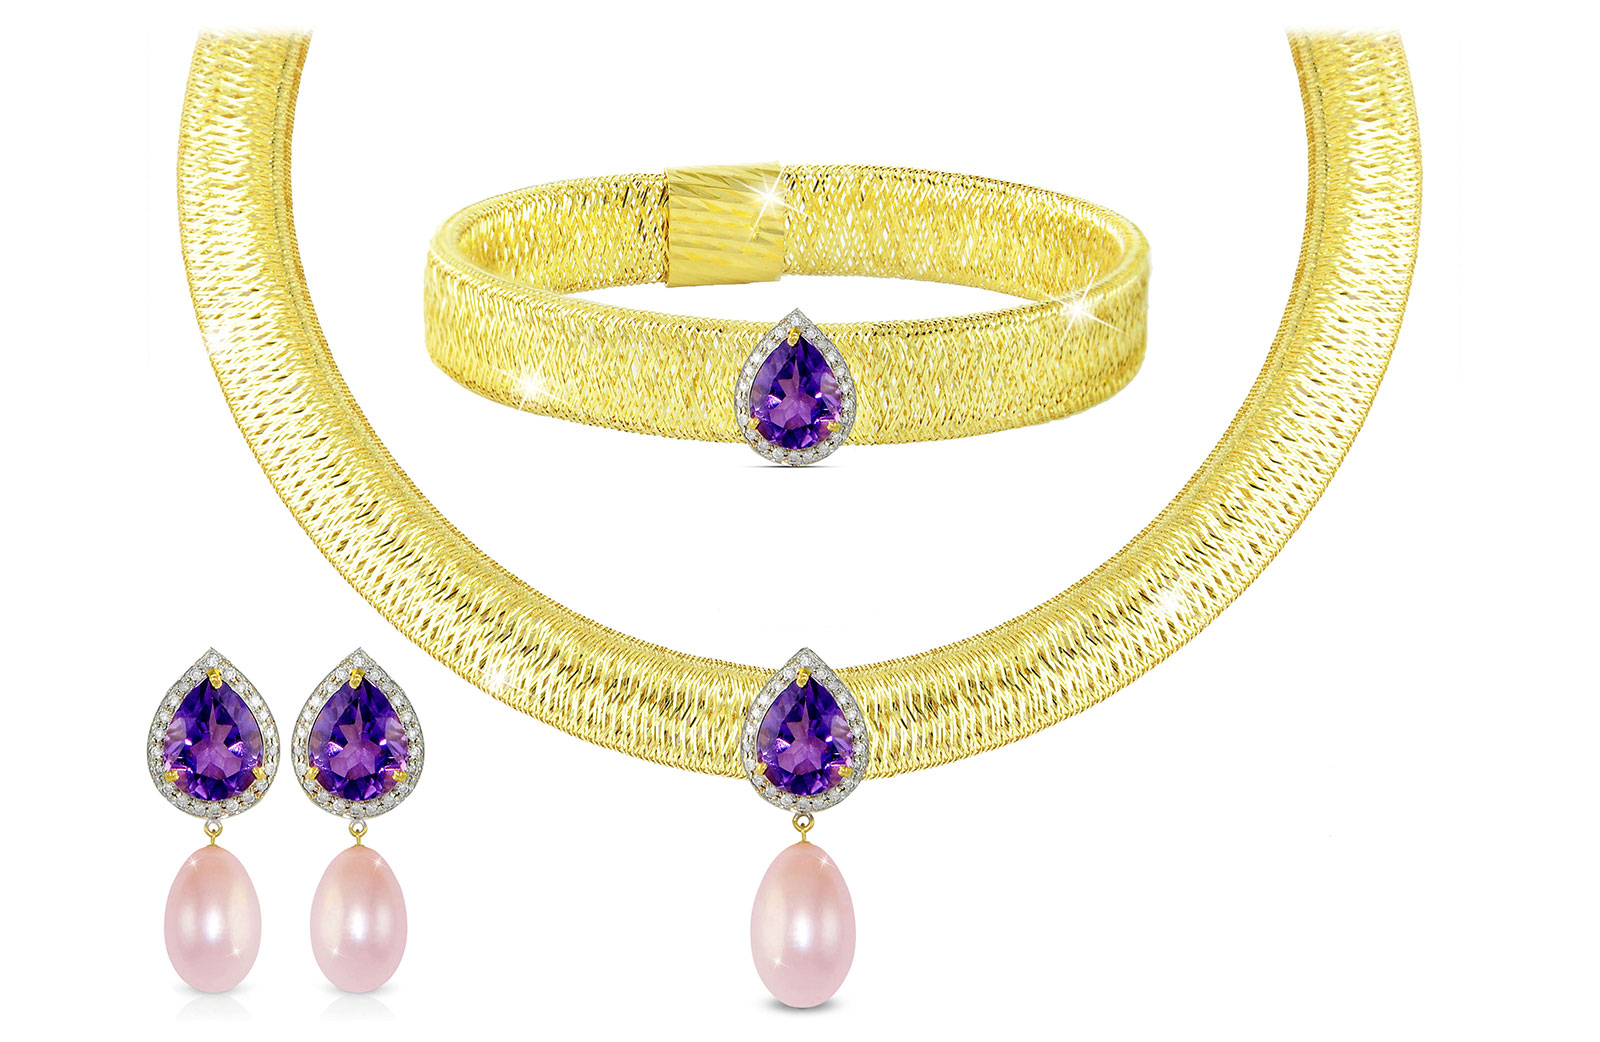 Vera Perla 18K Gold 0.48ct Diamonds, Amethyst and 13mm Purple Pearl Jewelry Set - 3 pcs.